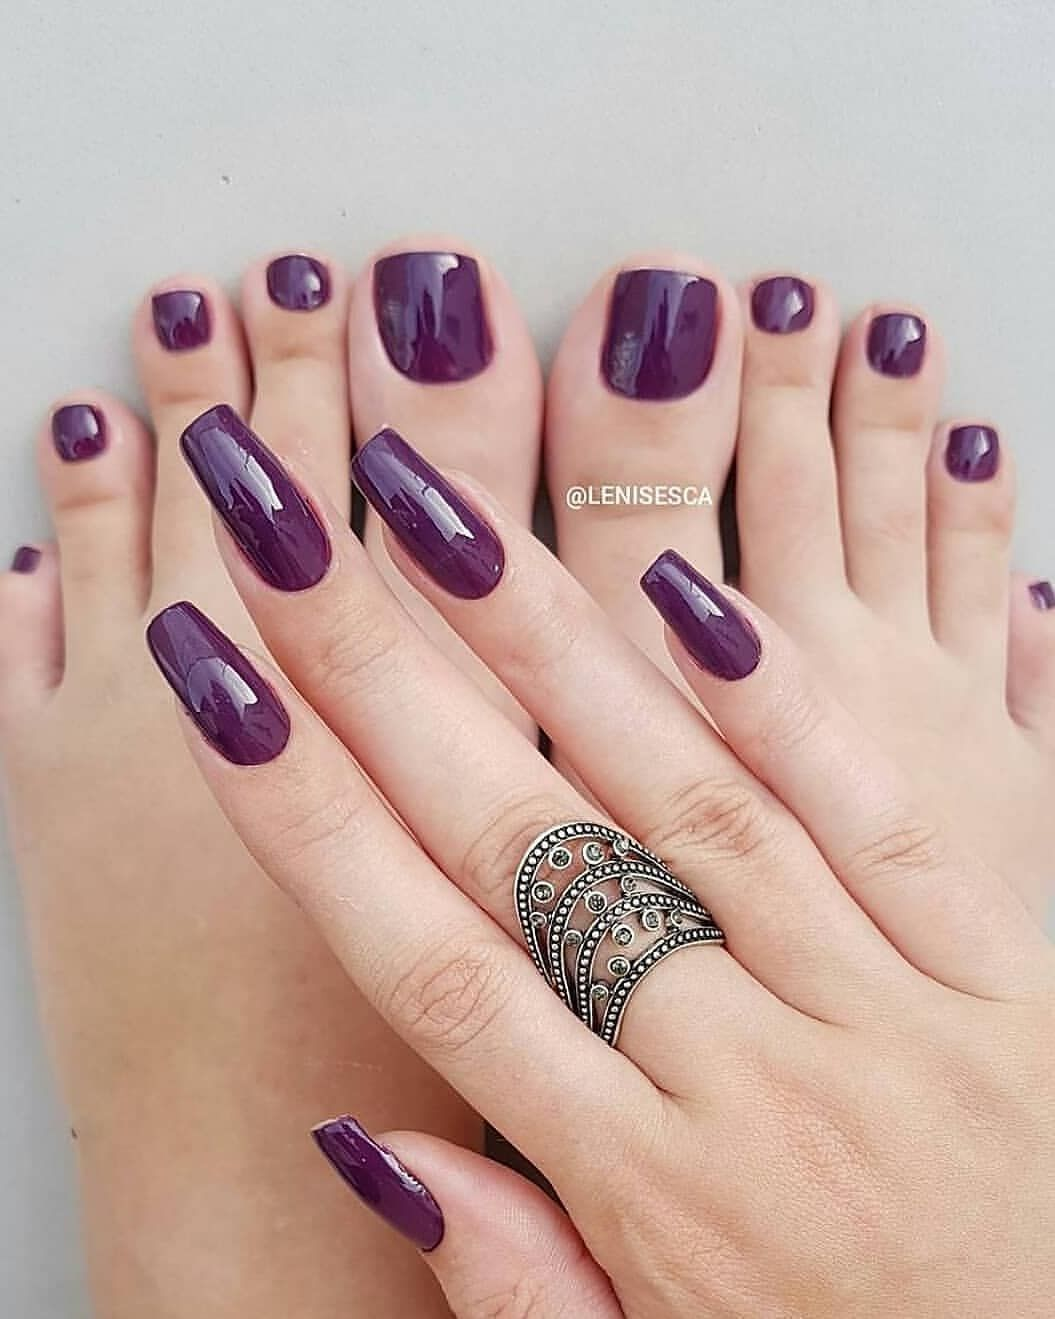 30 Winter Nail Colors 2019 2019 Colors Nail Winter Toe Nail